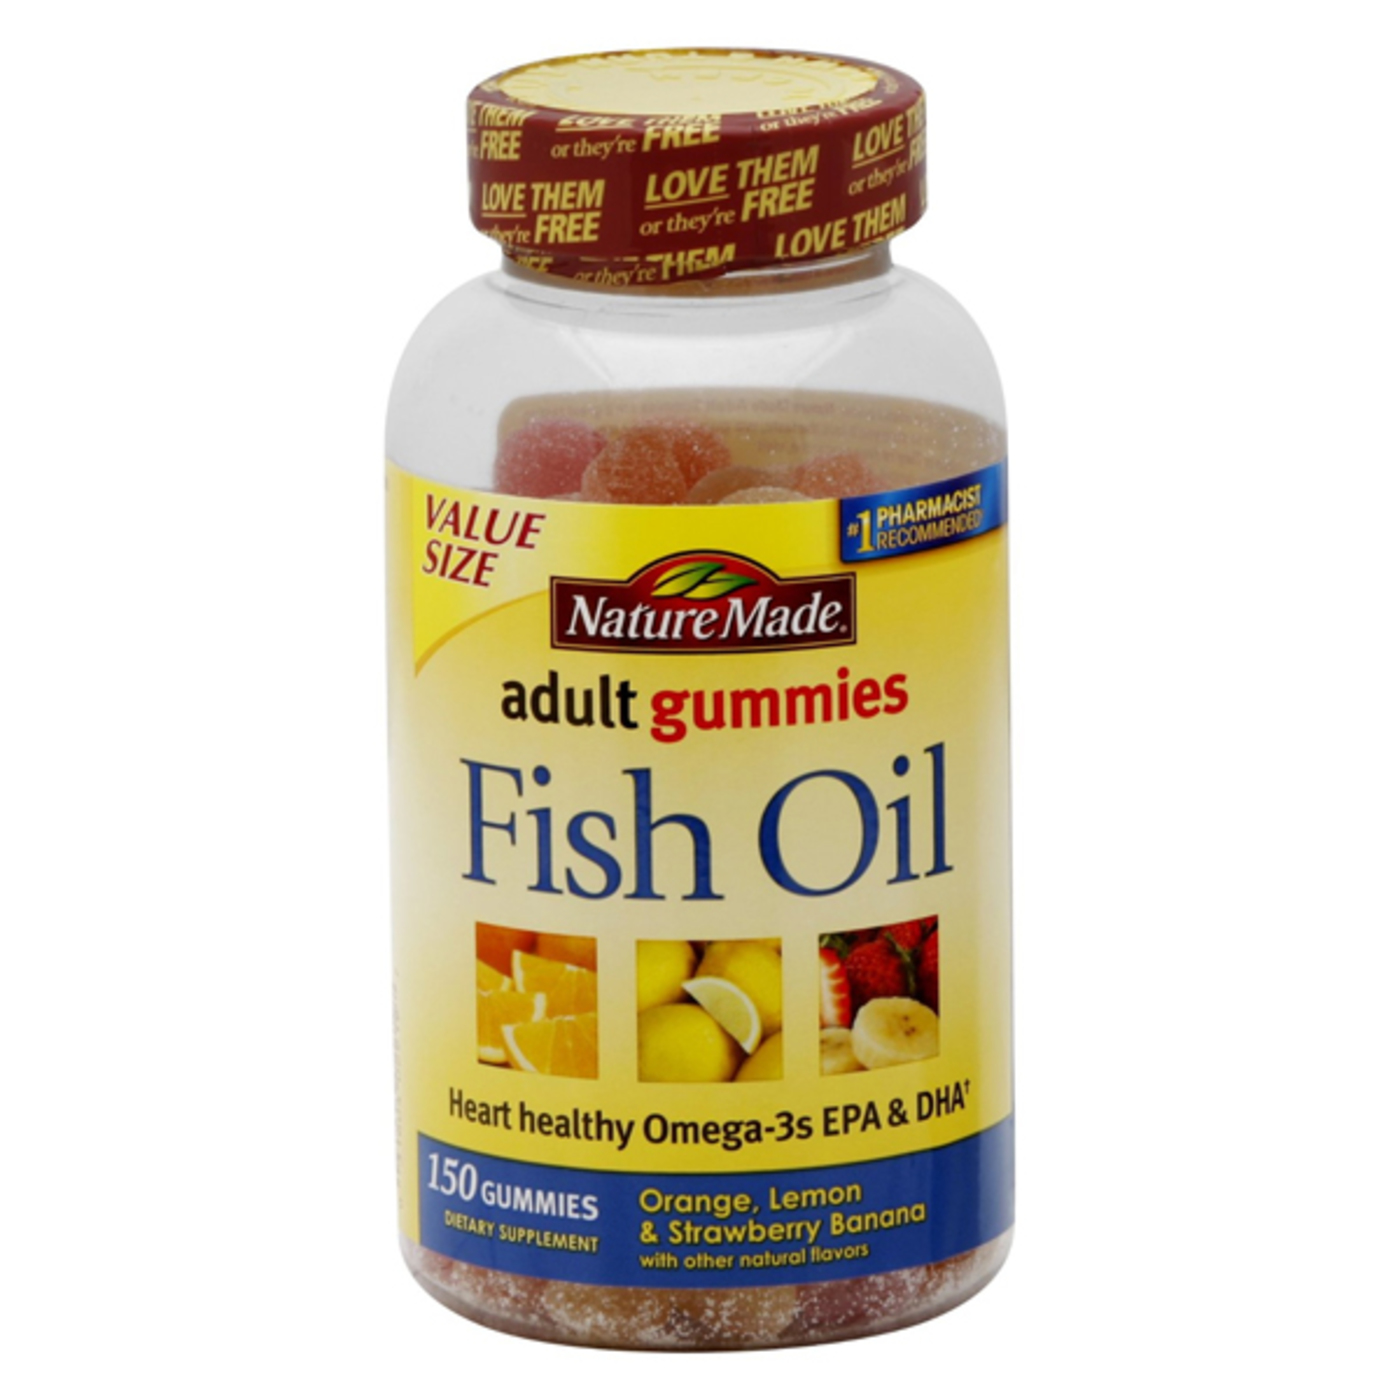 Nature made fish oil gummies 150 gummies for Nature made fish oil gummies